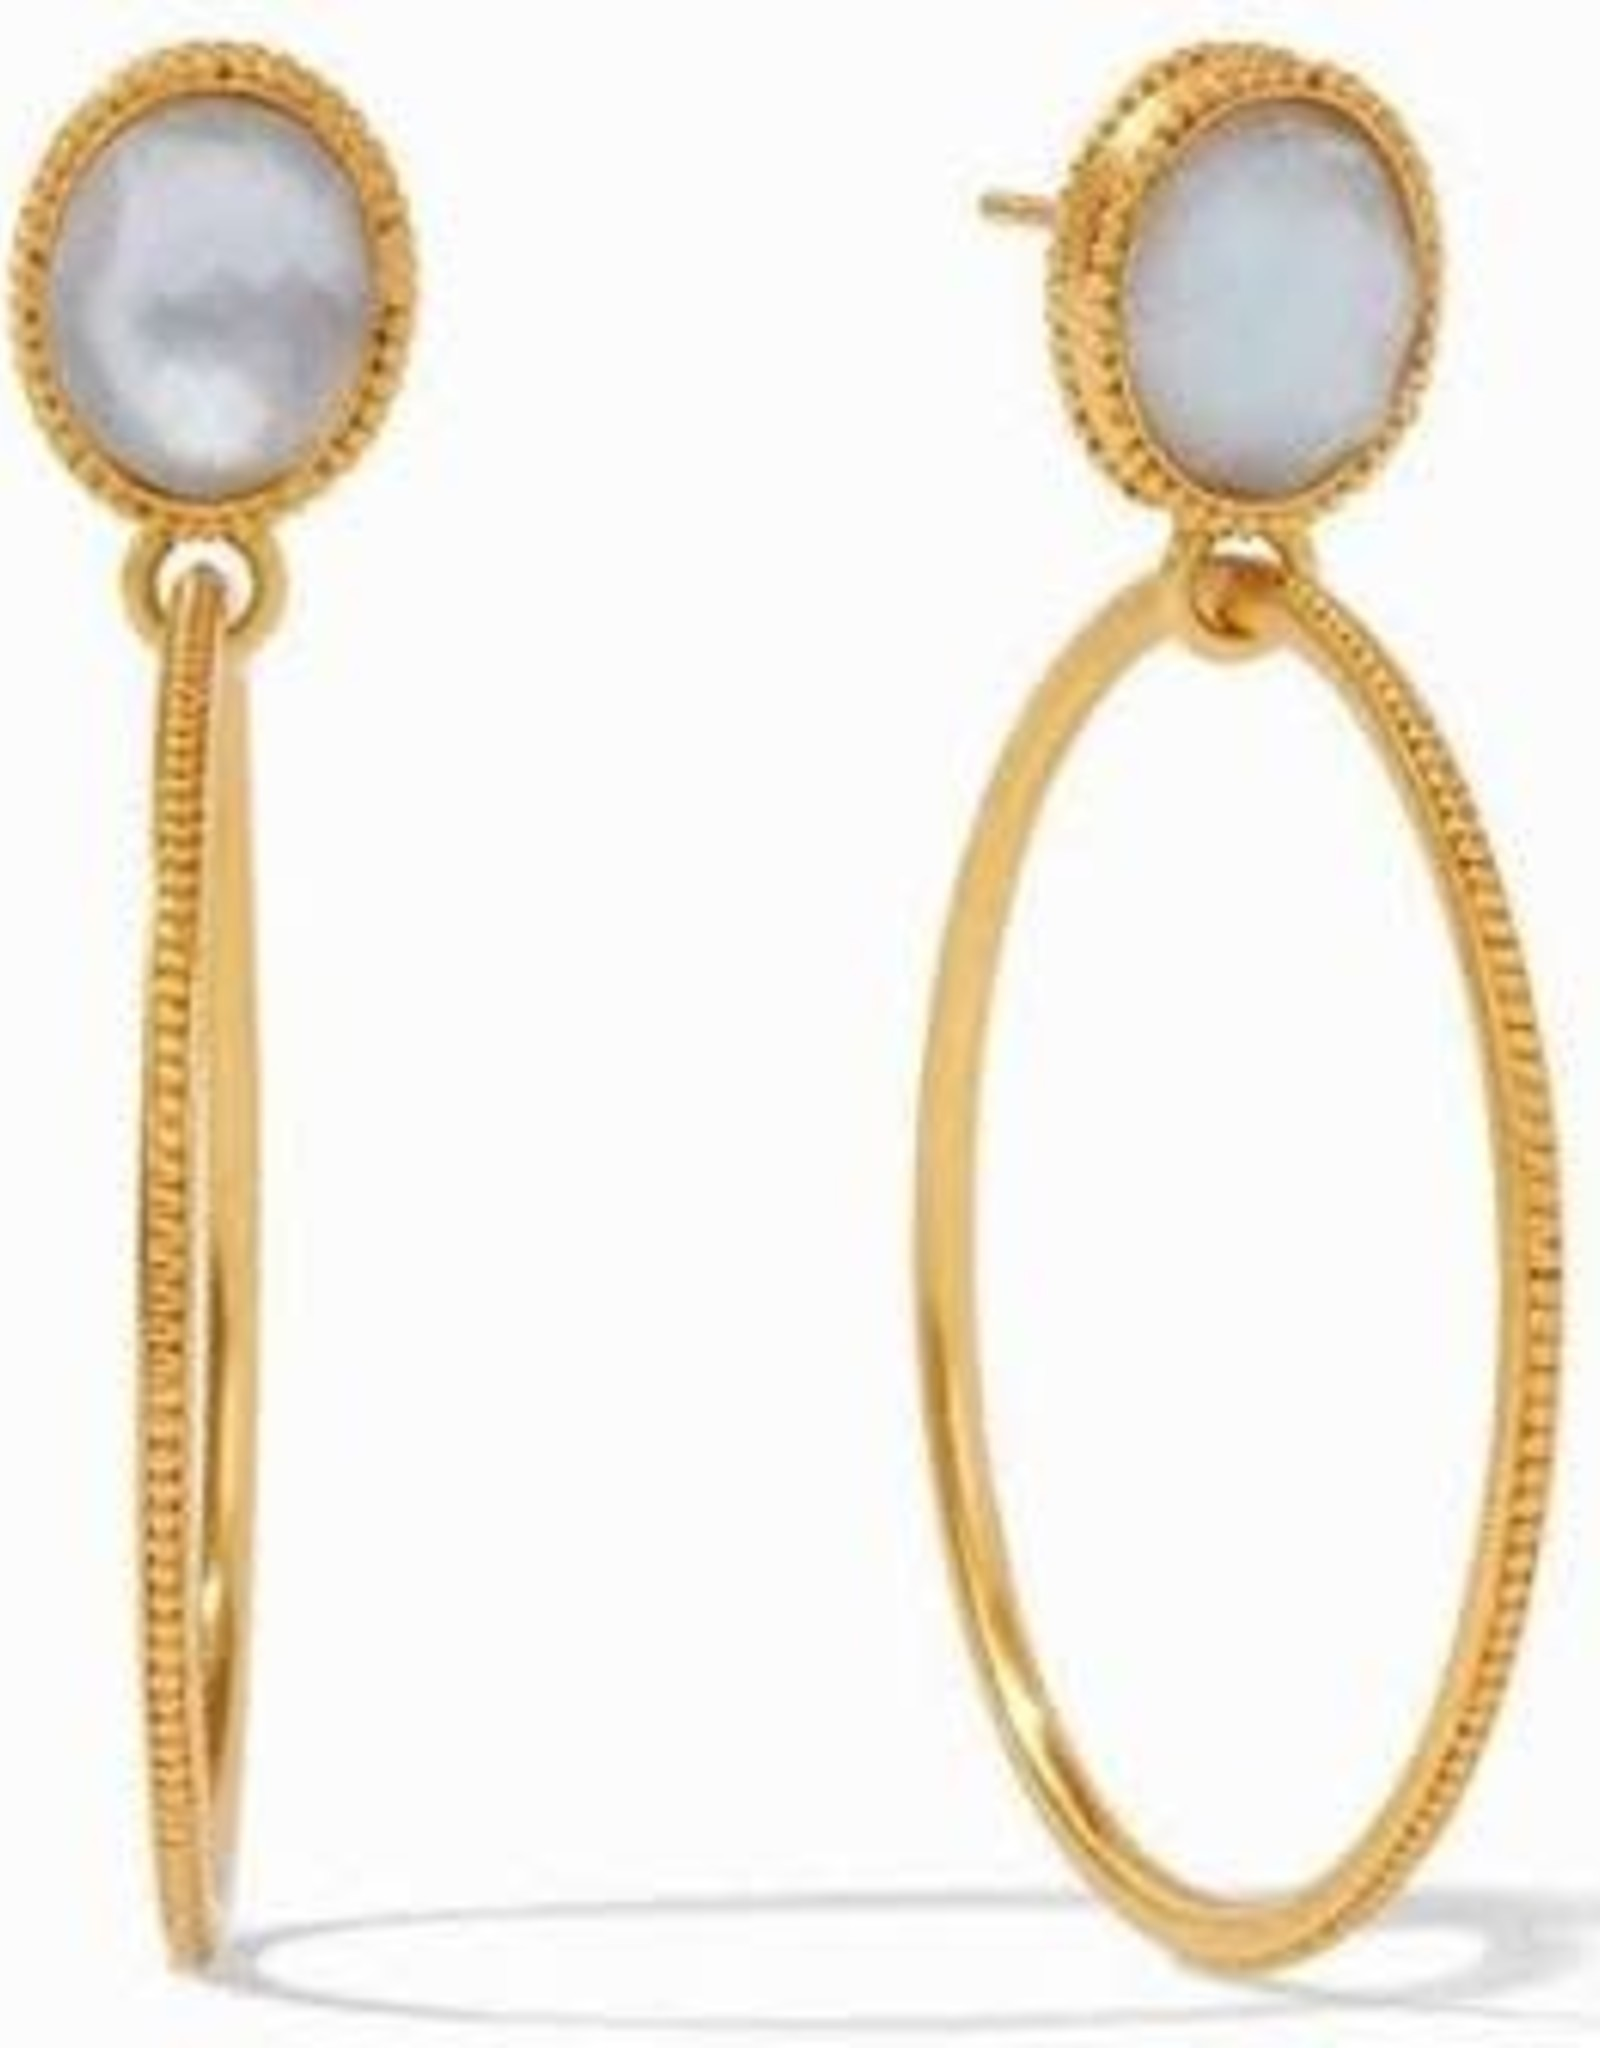 Julie Vos Verona Statement Earrings Gold Iridescent Chalcedony Blue